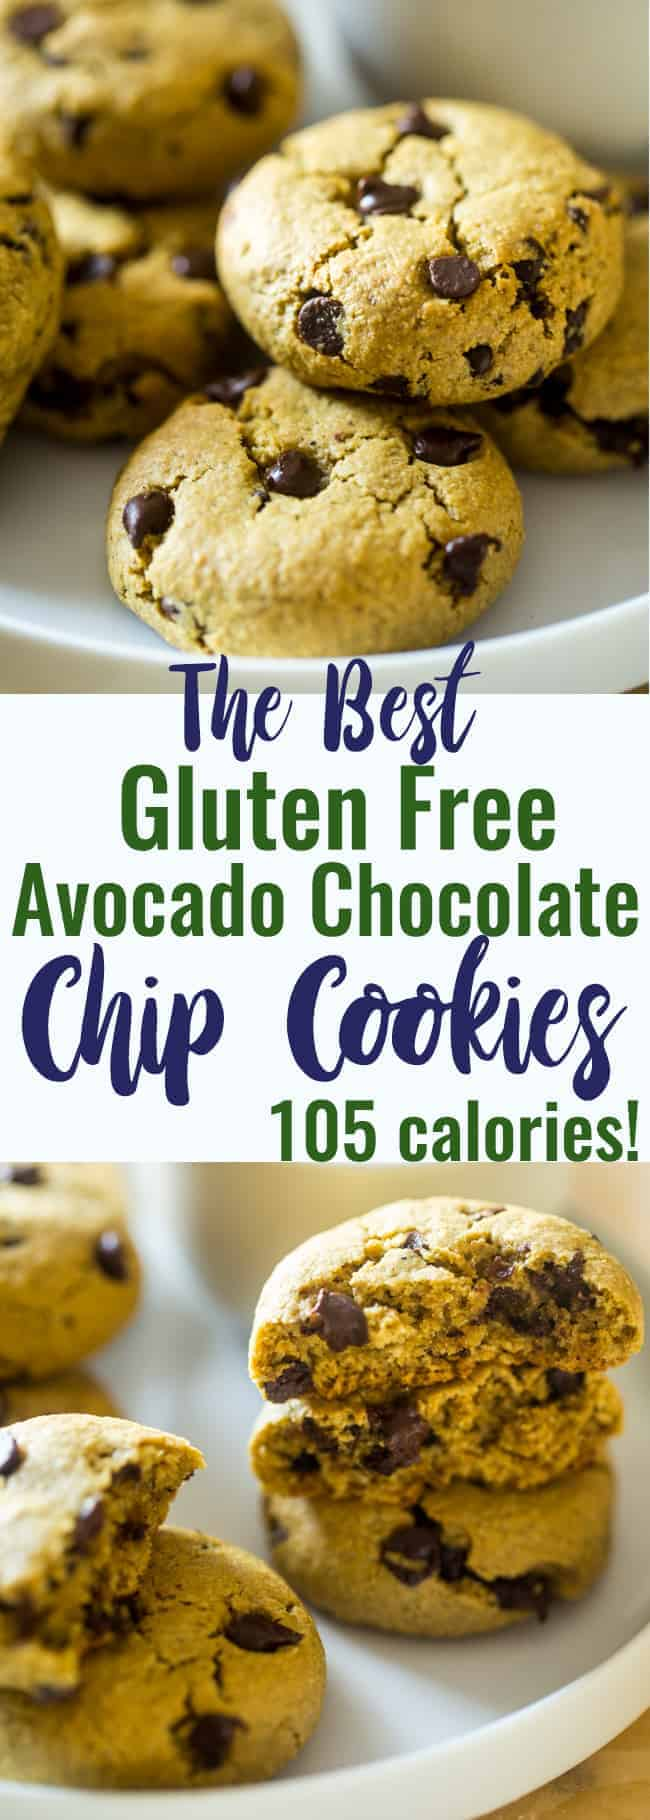 The BEST Healthy Chocolate Chip Avocado Cookie - These gluten free chocolate chip cookies are SO big, soft and chewy that you would never believe they are butter/oil free and use avocado to make them low fat and only 105 calories! | #Foodfaithfitness | #Glutenfree #Healthy #Avocado #ChocolateChipCookies #OatFlour